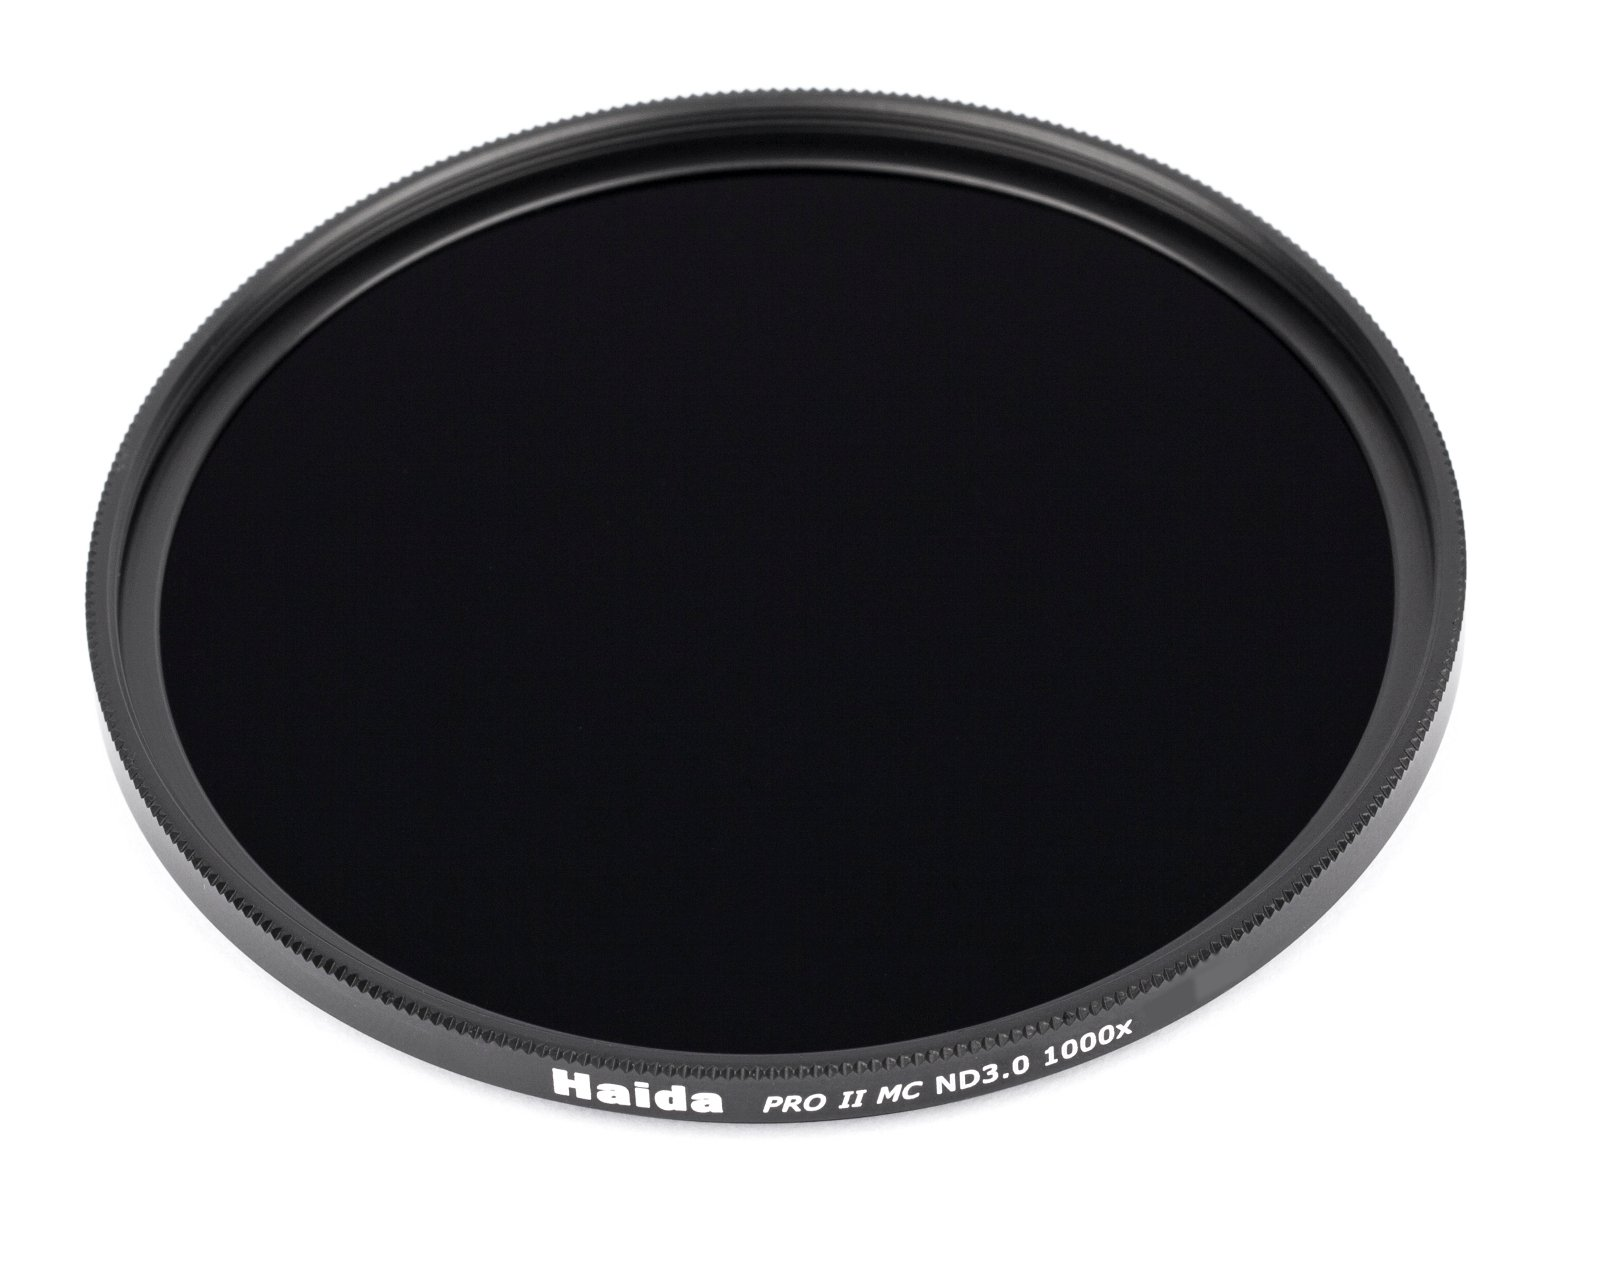 Haida 95mm PRO II Multi-Coated ND1000 Filter Neutral Density ND 95 10 Stop 3.0 by Haida